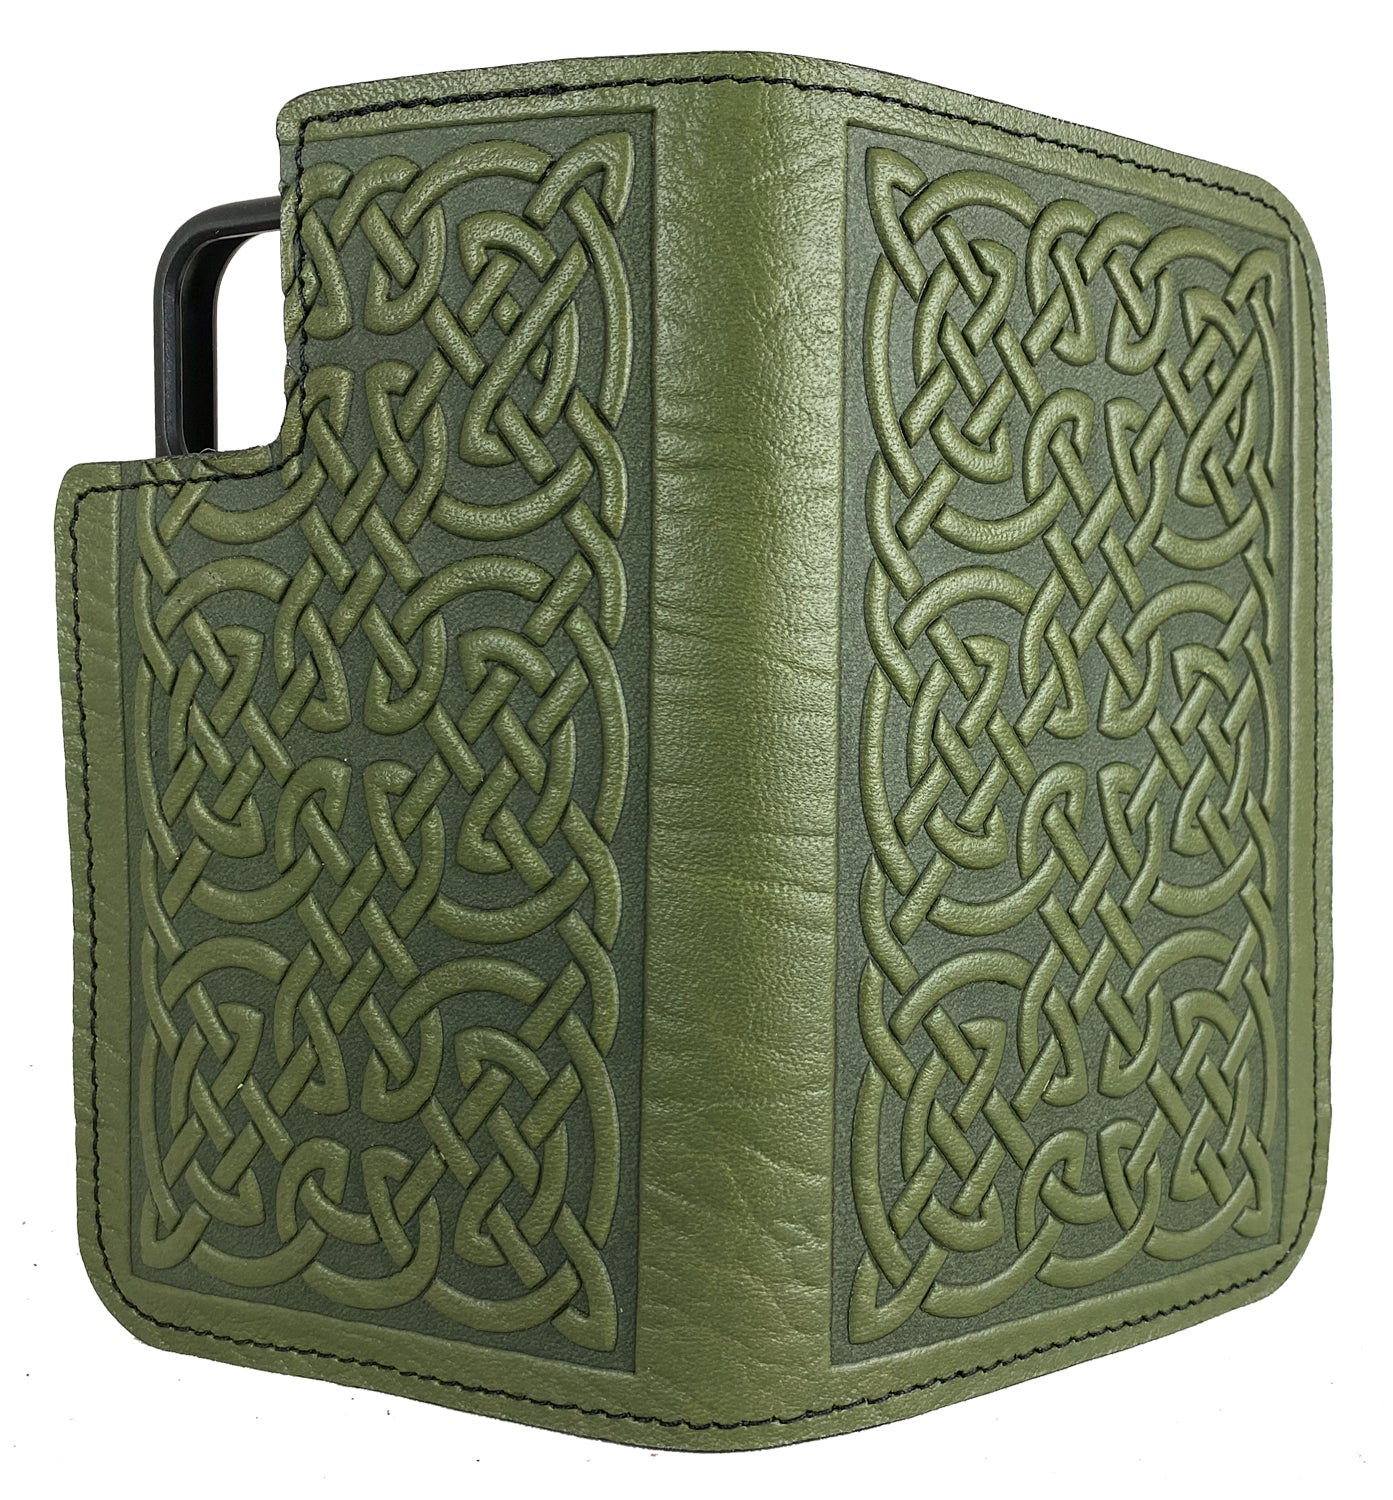 iPhone PRO MAX Leather Wallet Folio Case, Bold Celtic in Fern